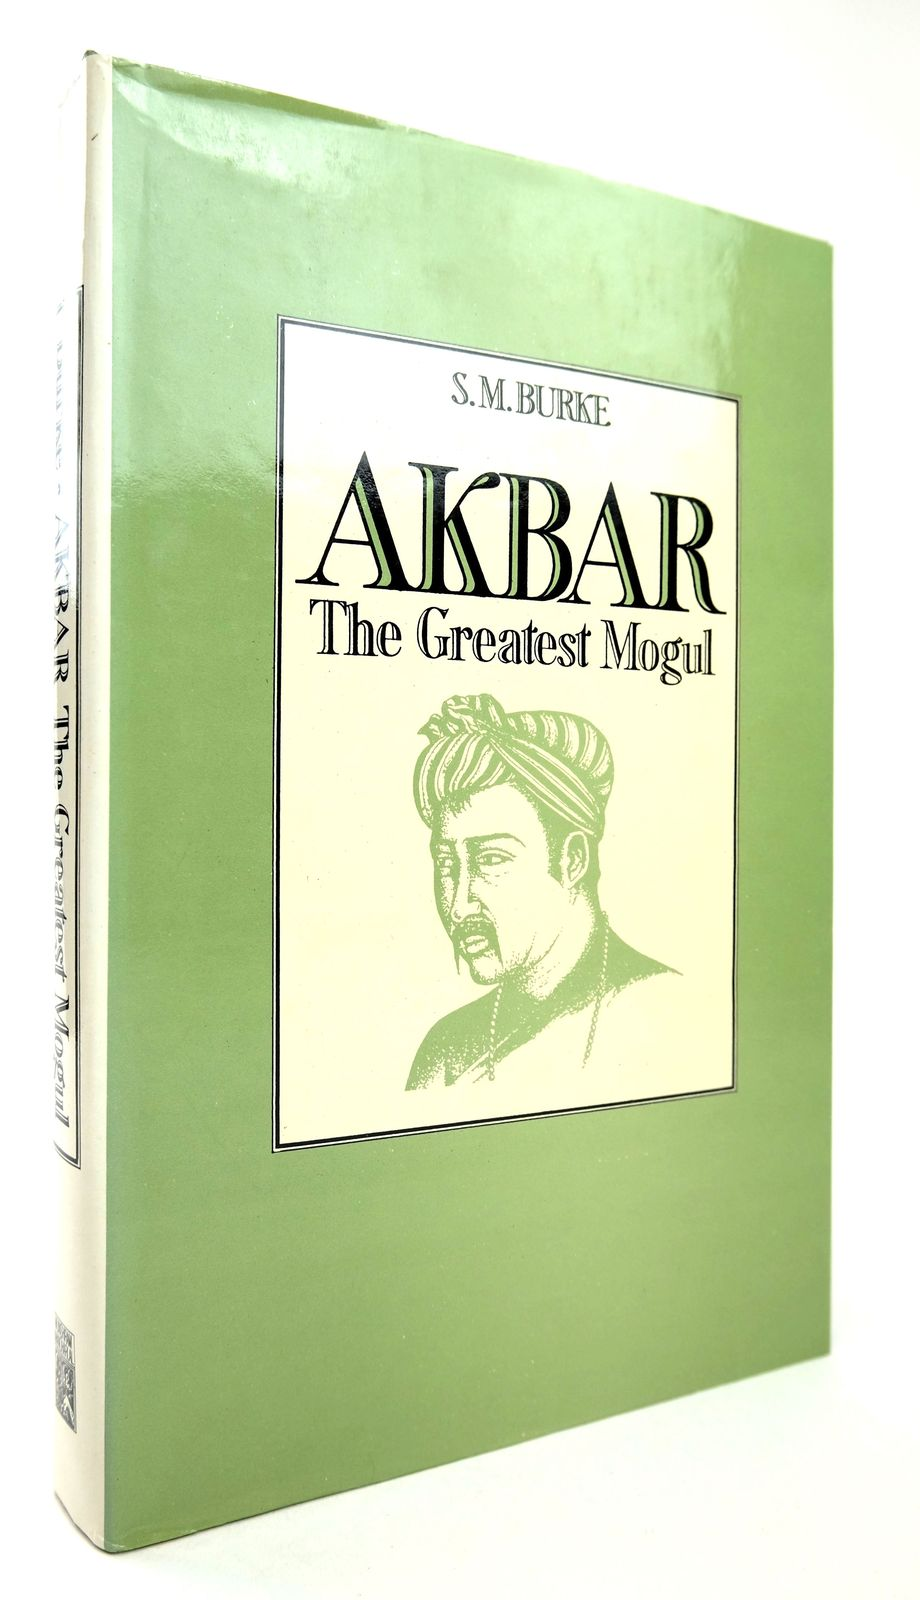 Photo of AKBAR THE GREATEST MOGUL written by Burke, S.M. published by Munshiram Manoharlal (STOCK CODE: 1818763)  for sale by Stella & Rose's Books